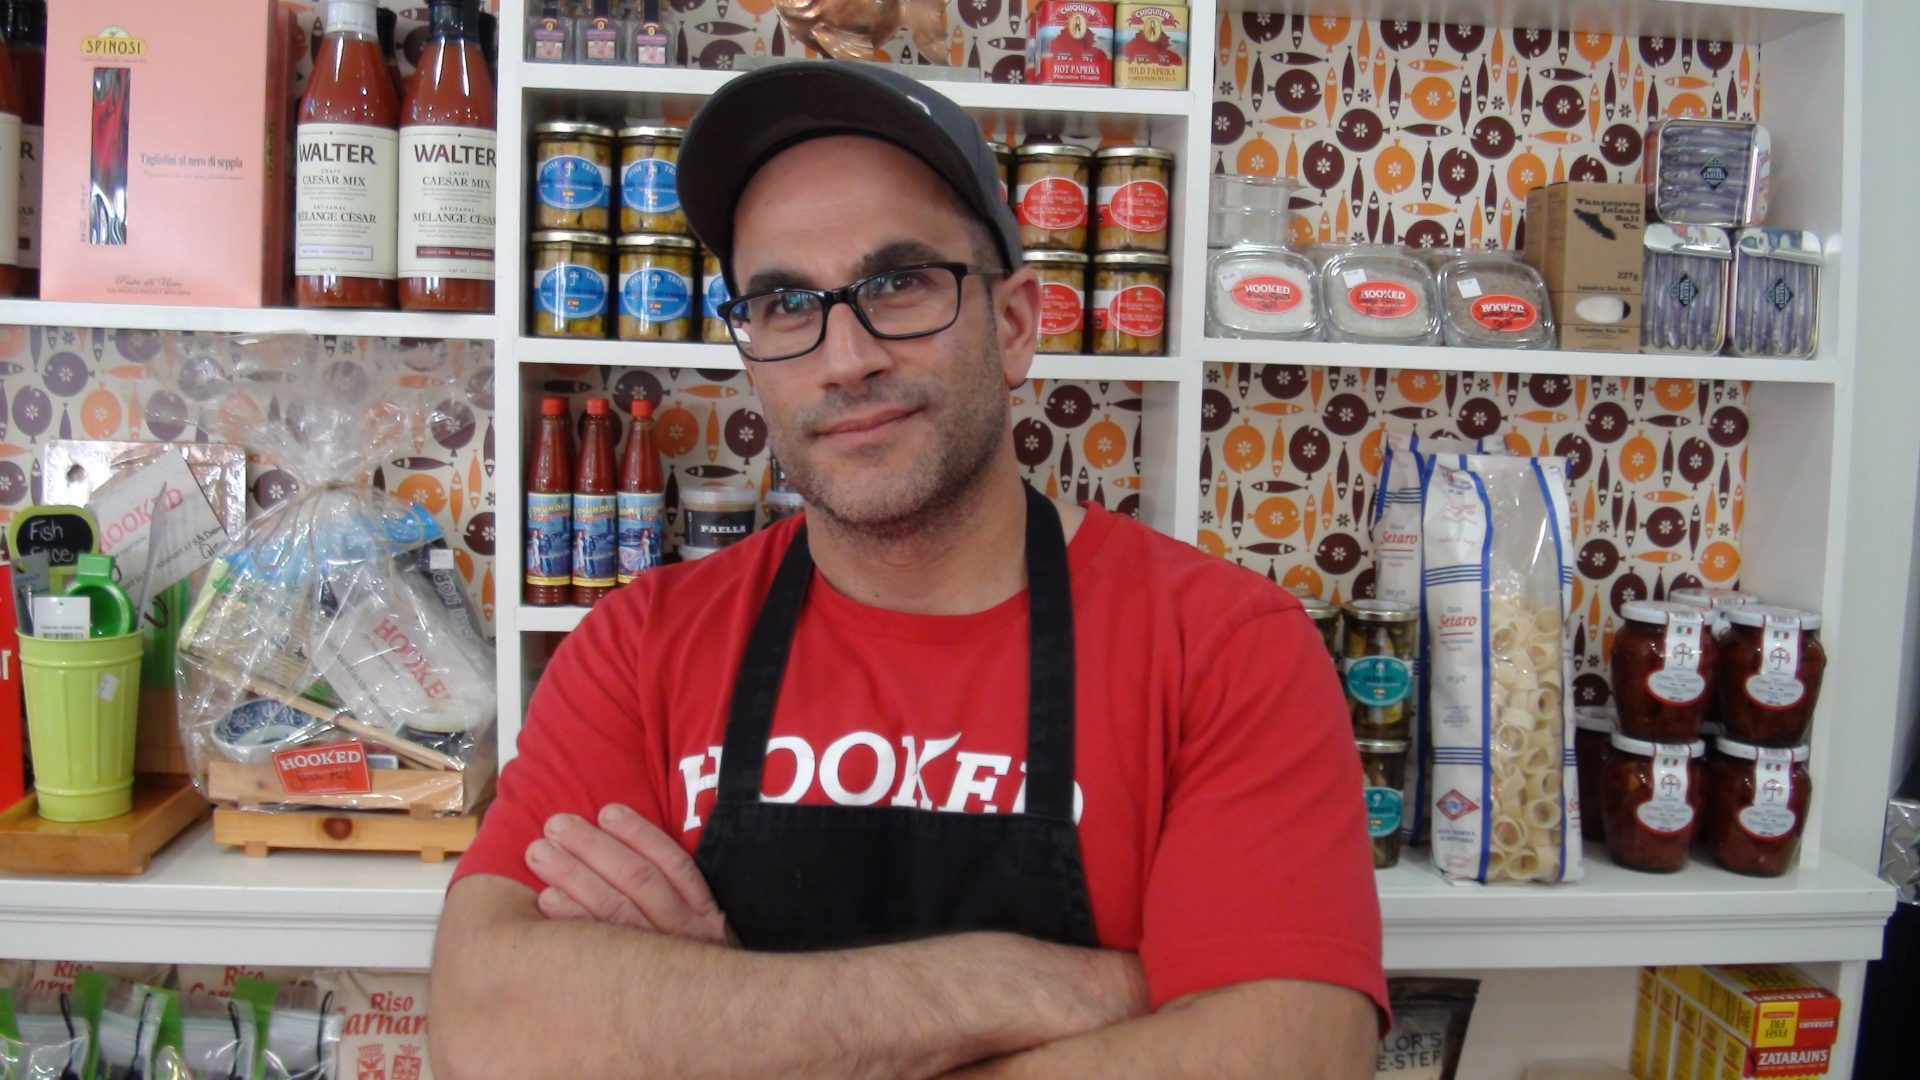 Chef Daniel Muia shows us some of his favourite sustainable fish at Hooked on the Danforth.